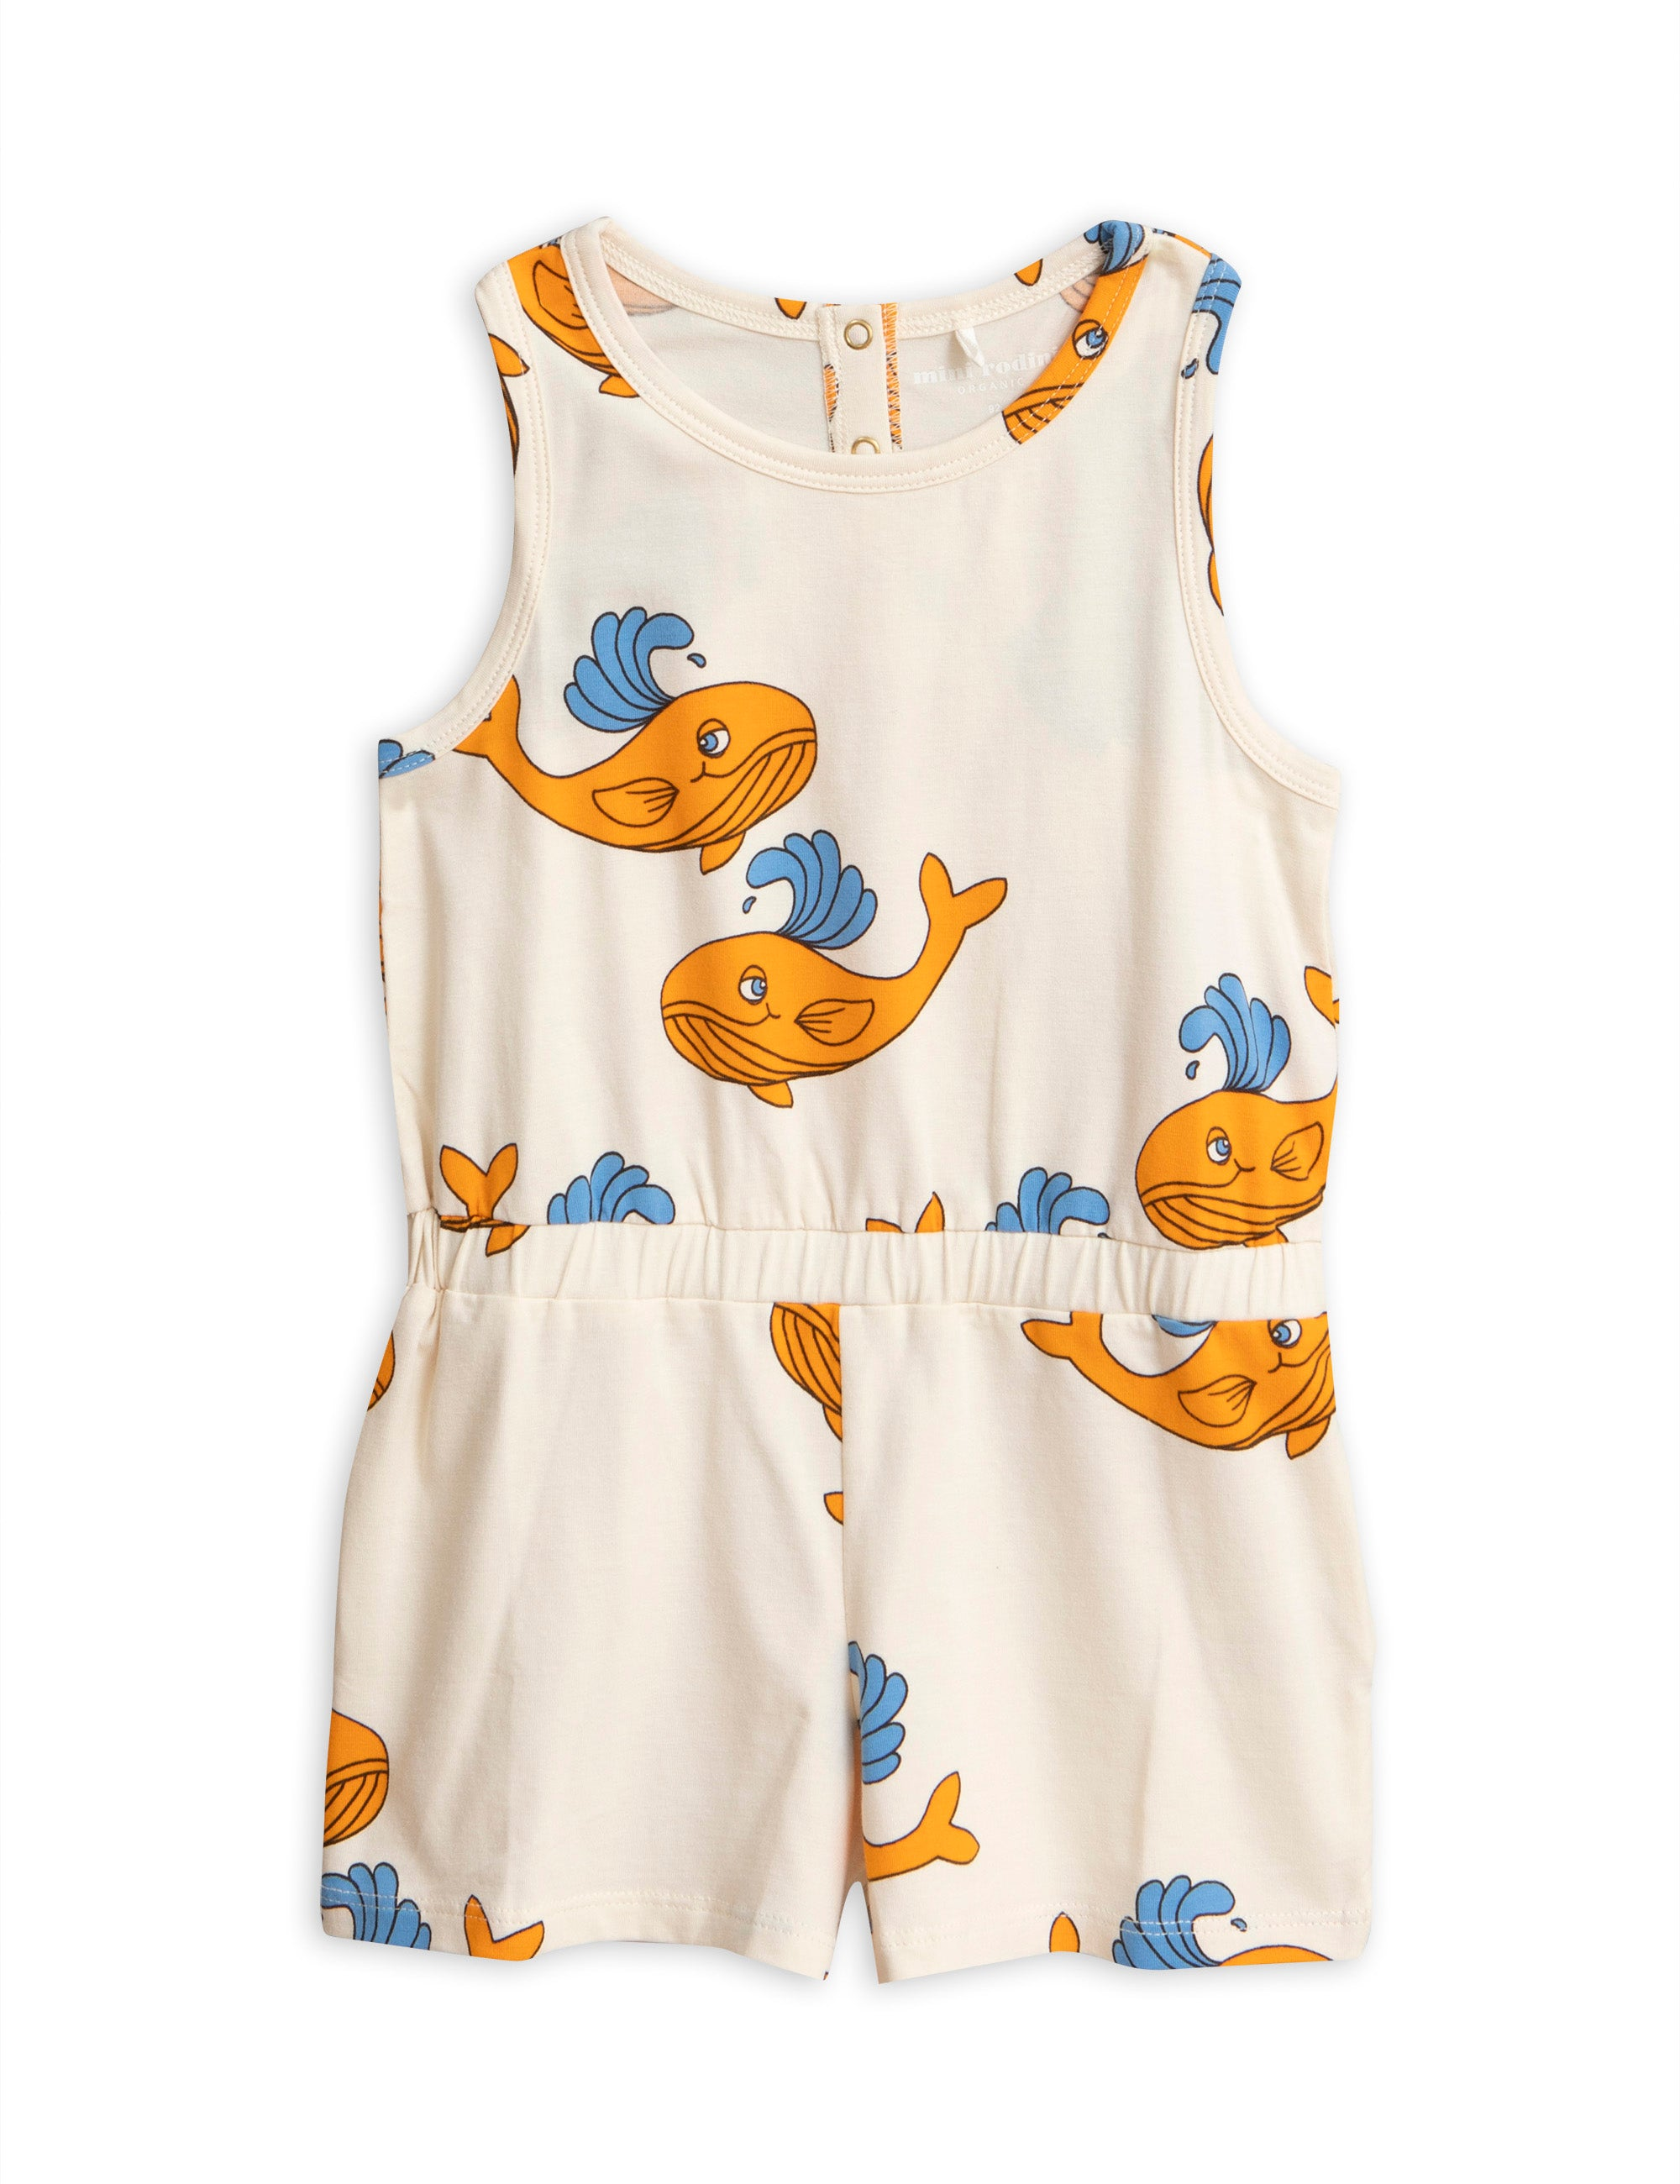 Mini Rodini Whale Summersuit - Orange